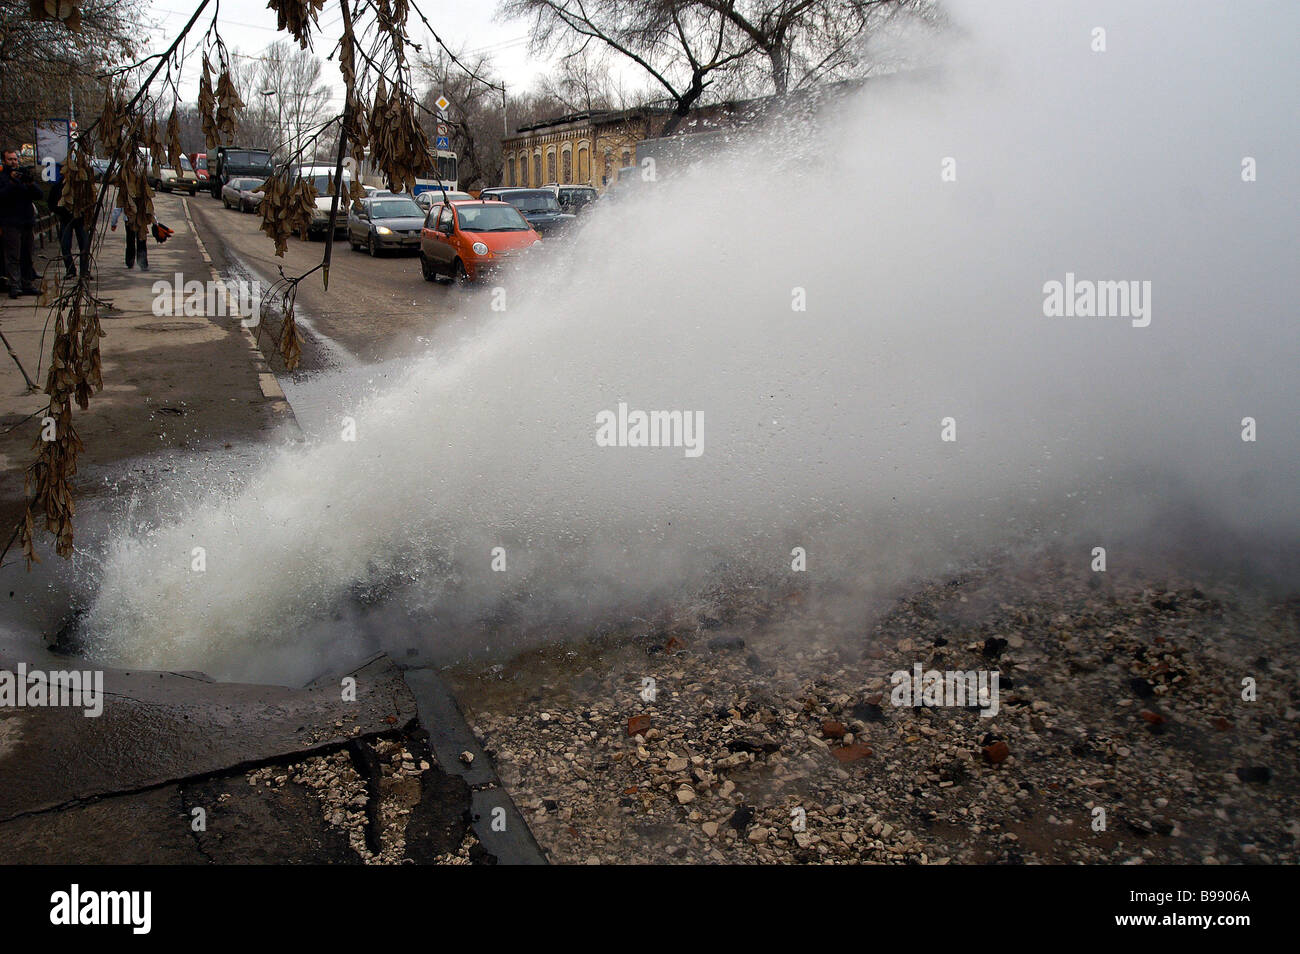 A ground collapse caused by a ruptured hot water pipe Samara - Stock Image